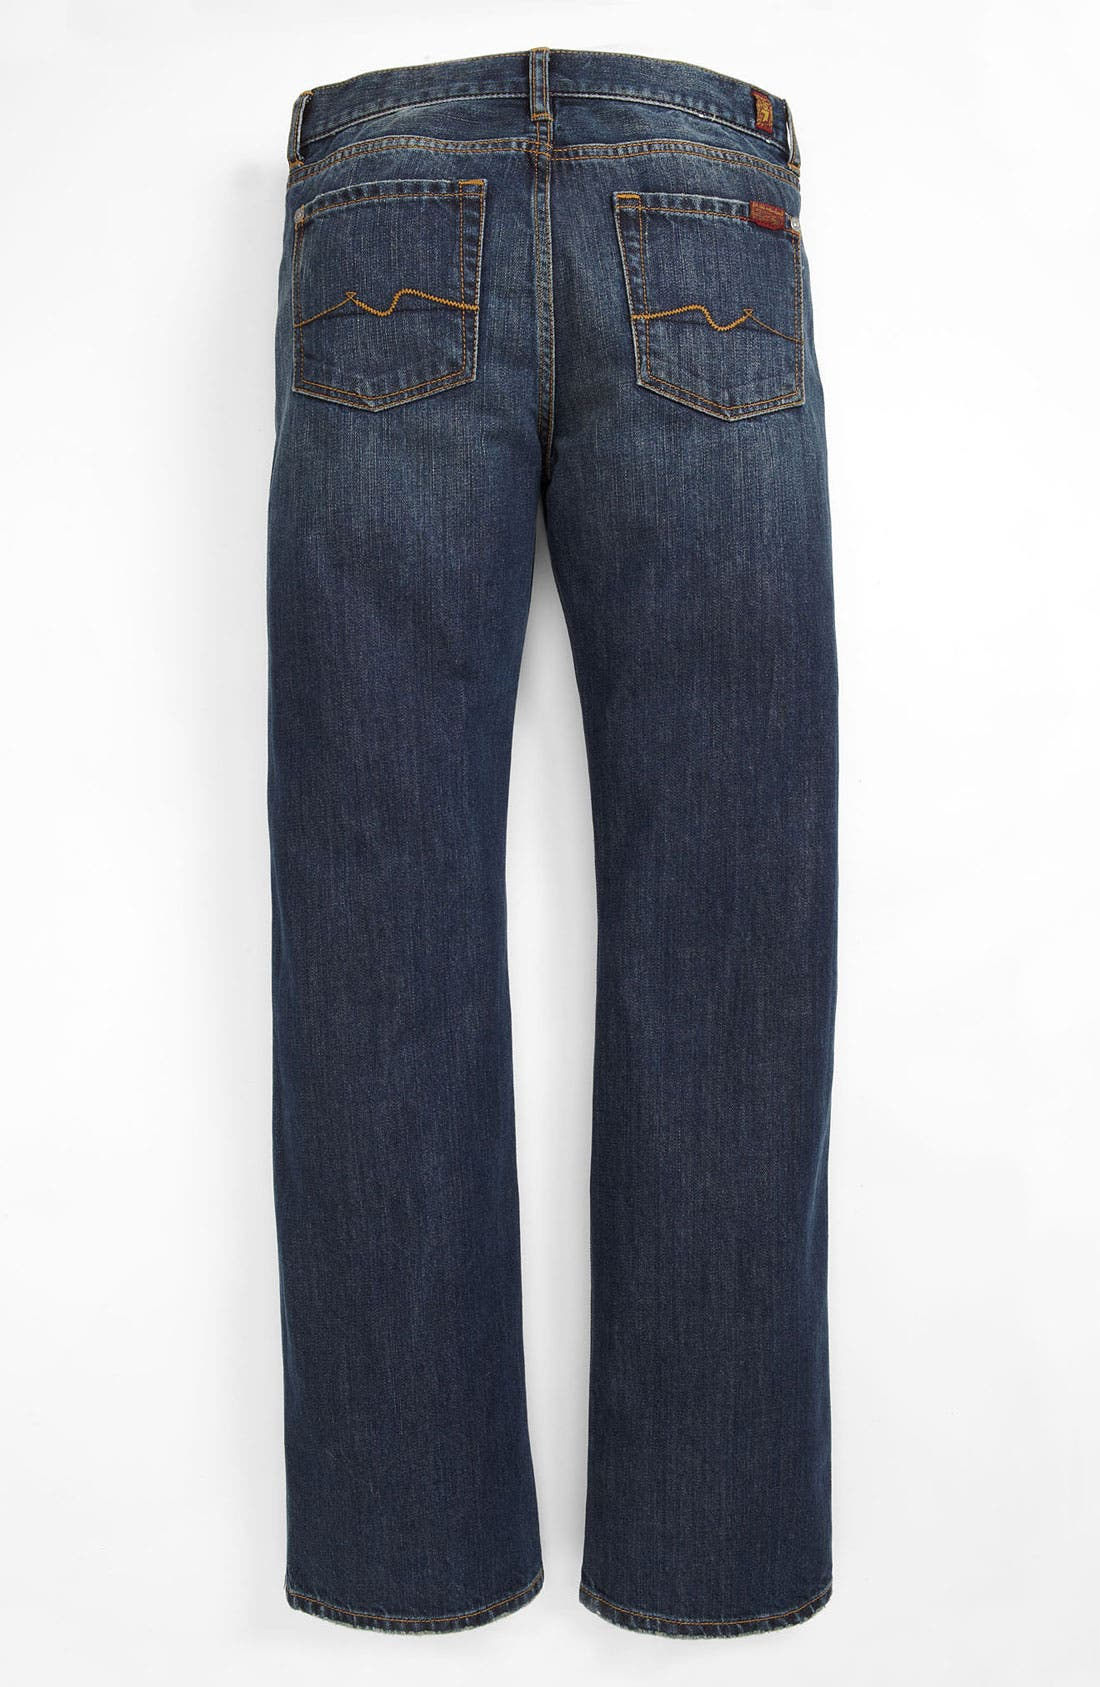 Alternate Image 1 Selected - 7 For All Mankind® 'Standard' Straight Leg Jeans (Big Boys)